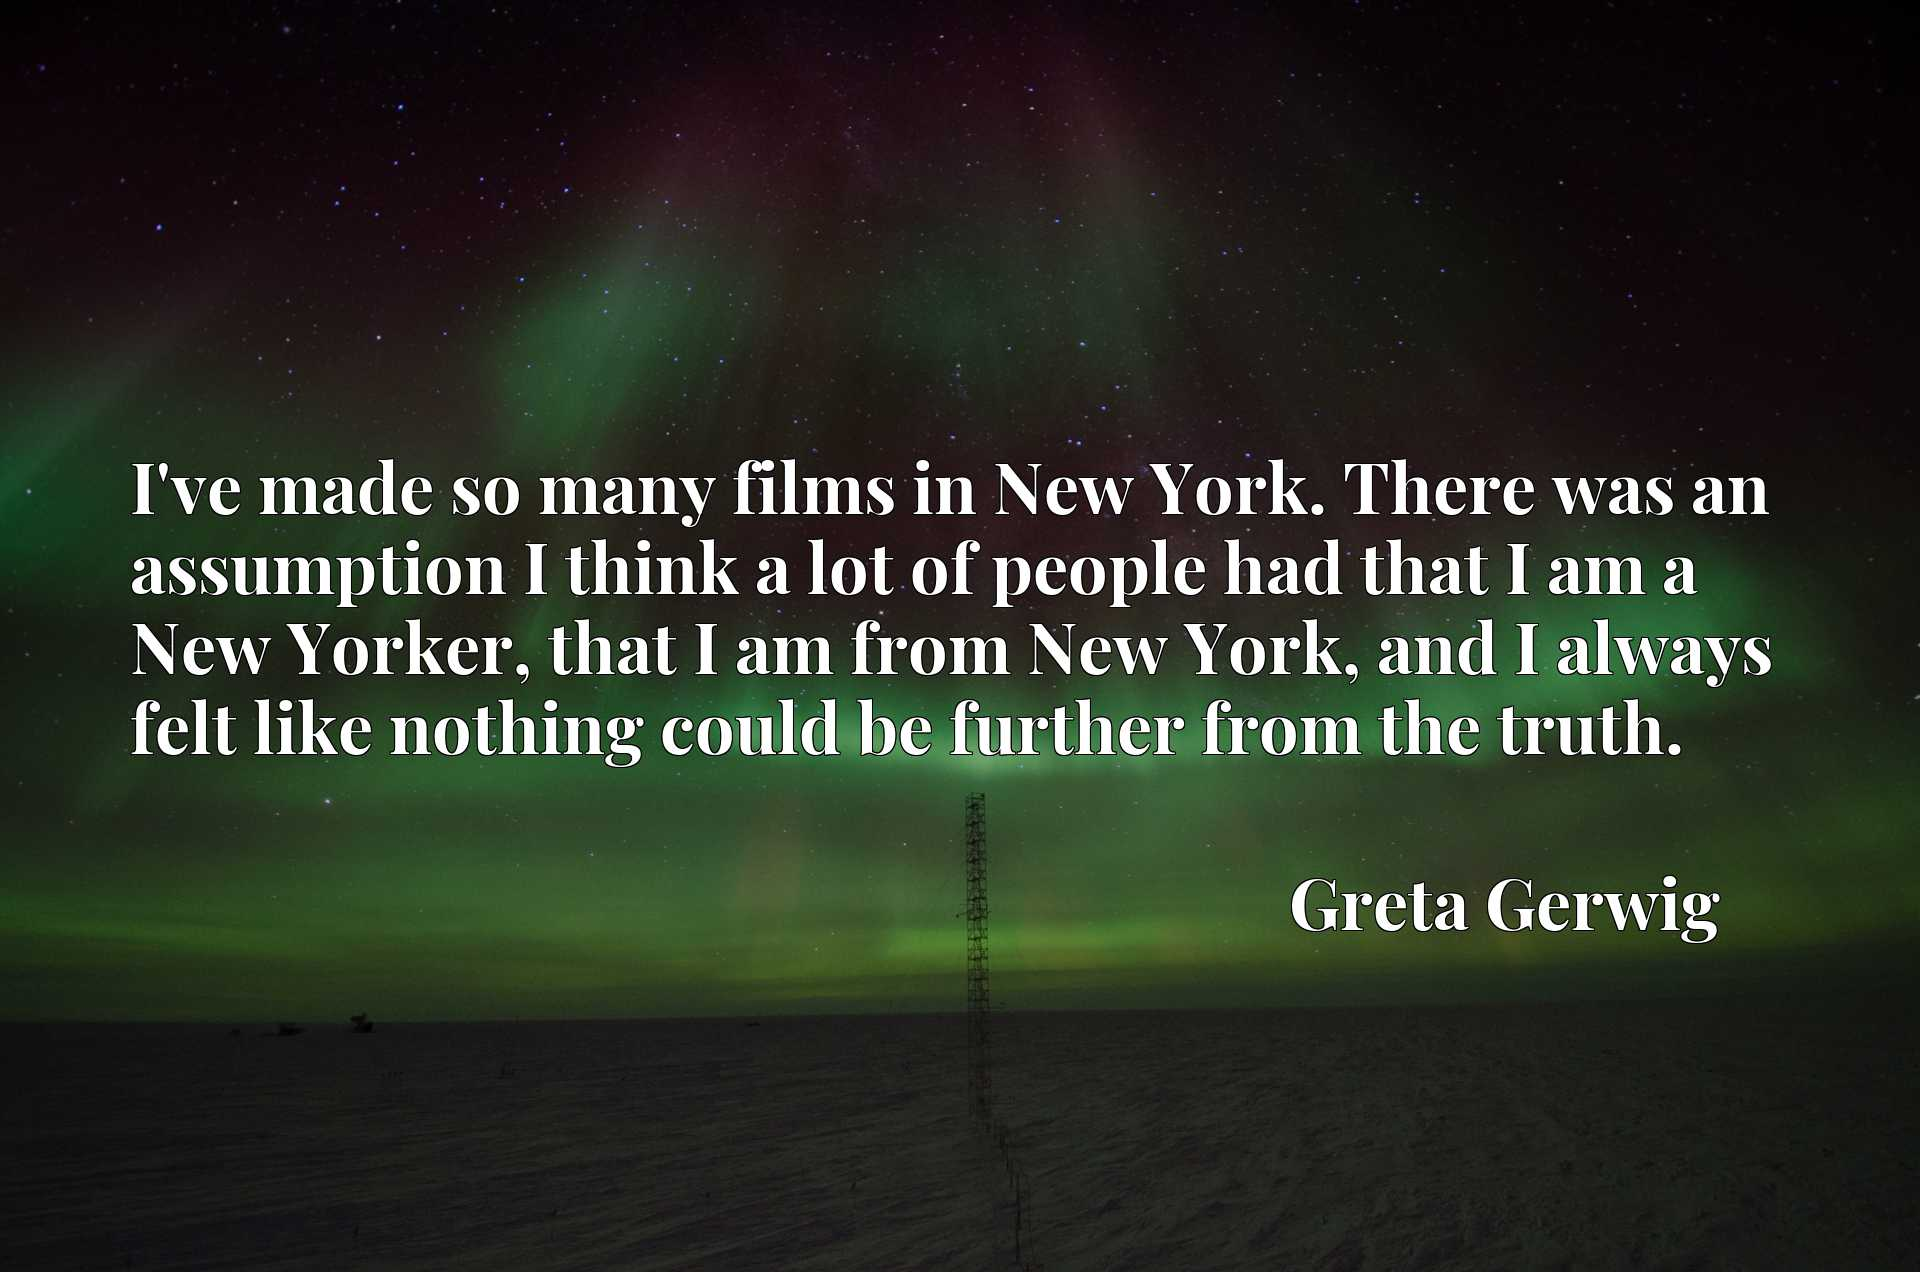 I've made so many films in New York. There was an assumption I think a lot of people had that I am a New Yorker, that I am from New York, and I always felt like nothing could be further from the truth.